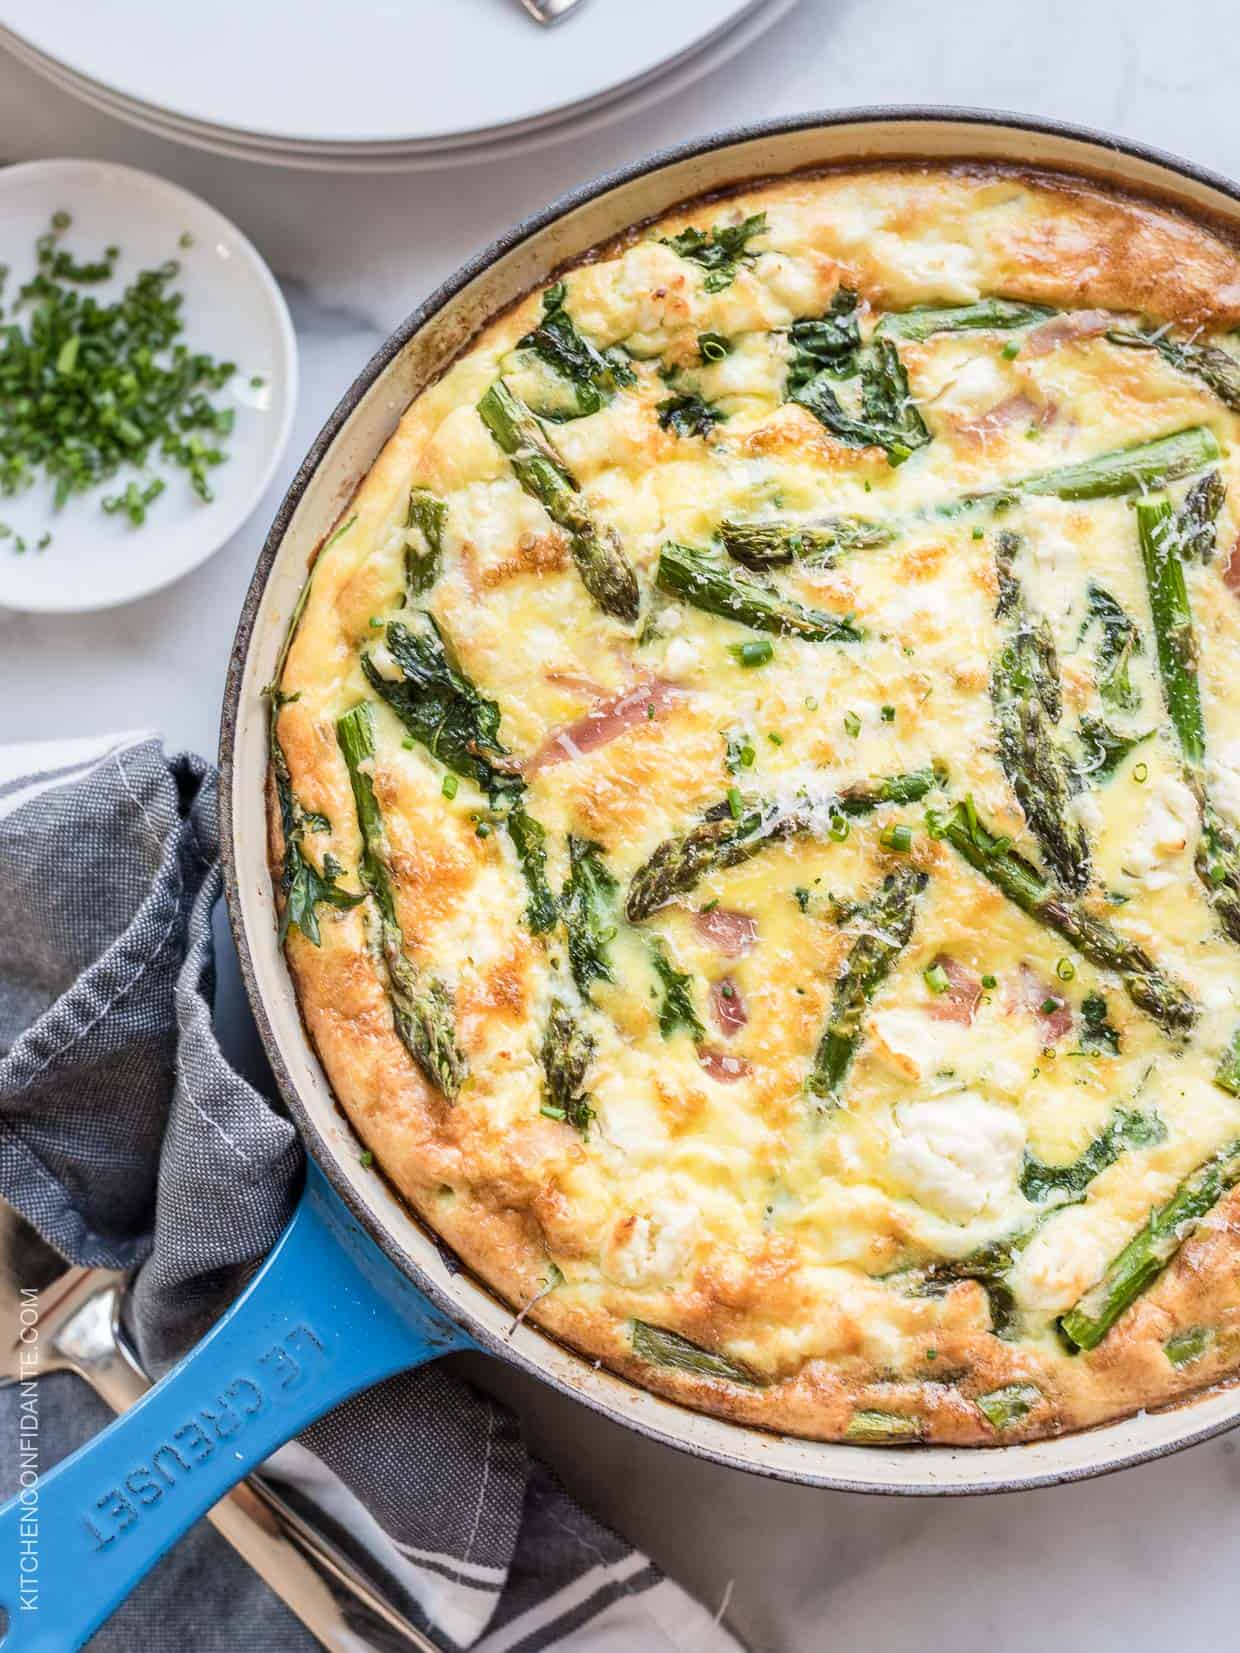 A view from the top of a freshly baked asparagus frittata.